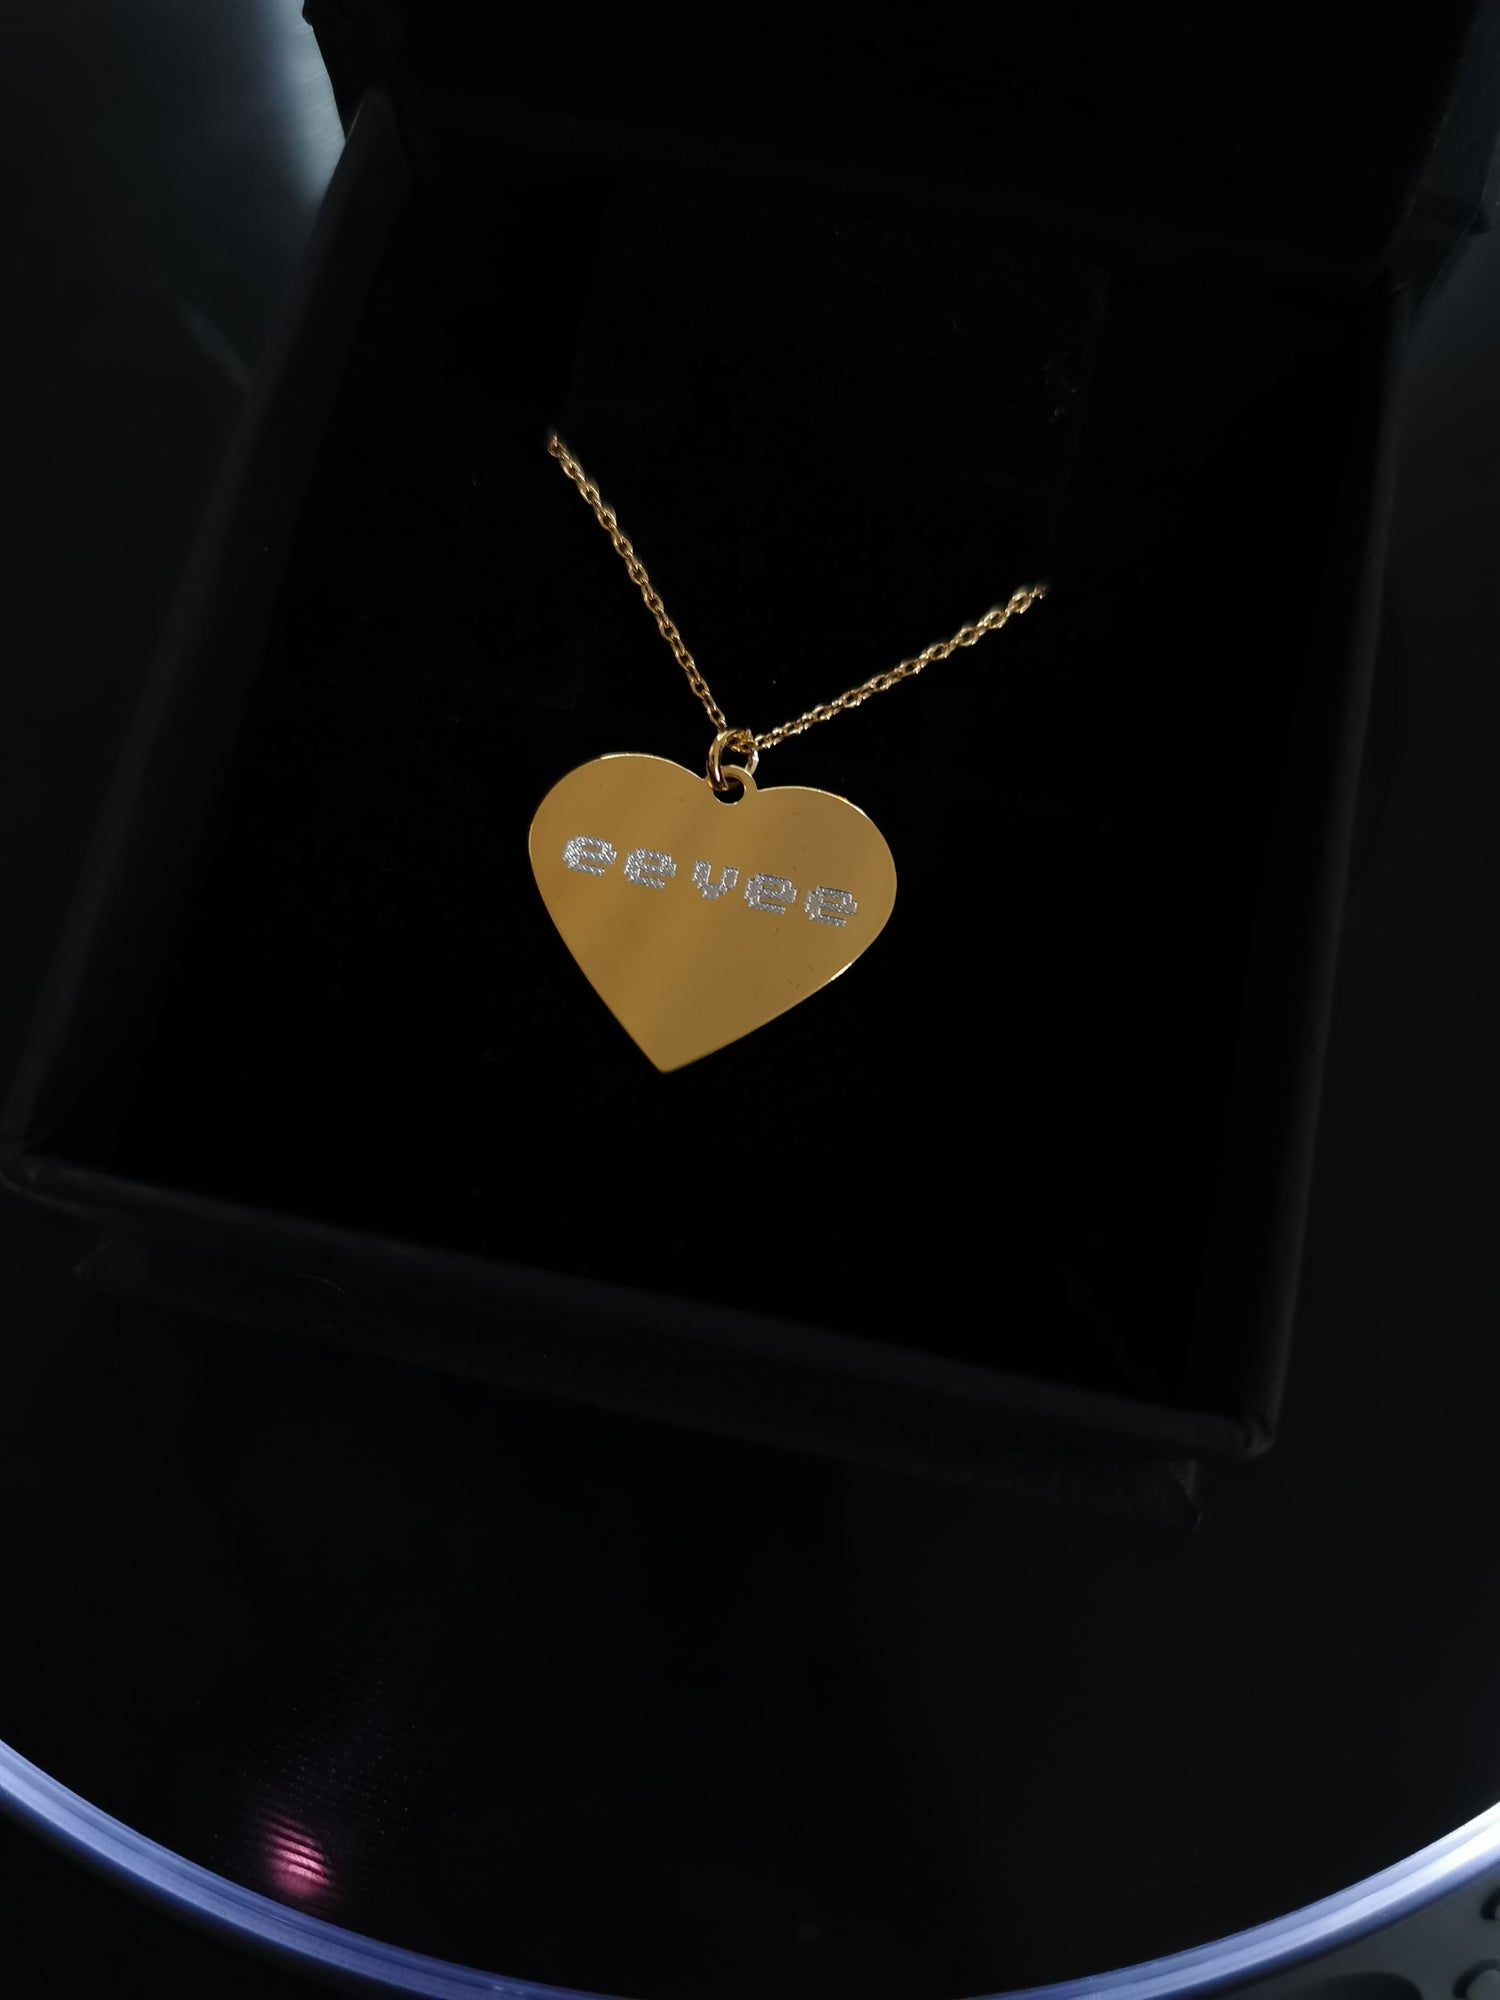 Image of 8 bit eevee chain, 24k gold